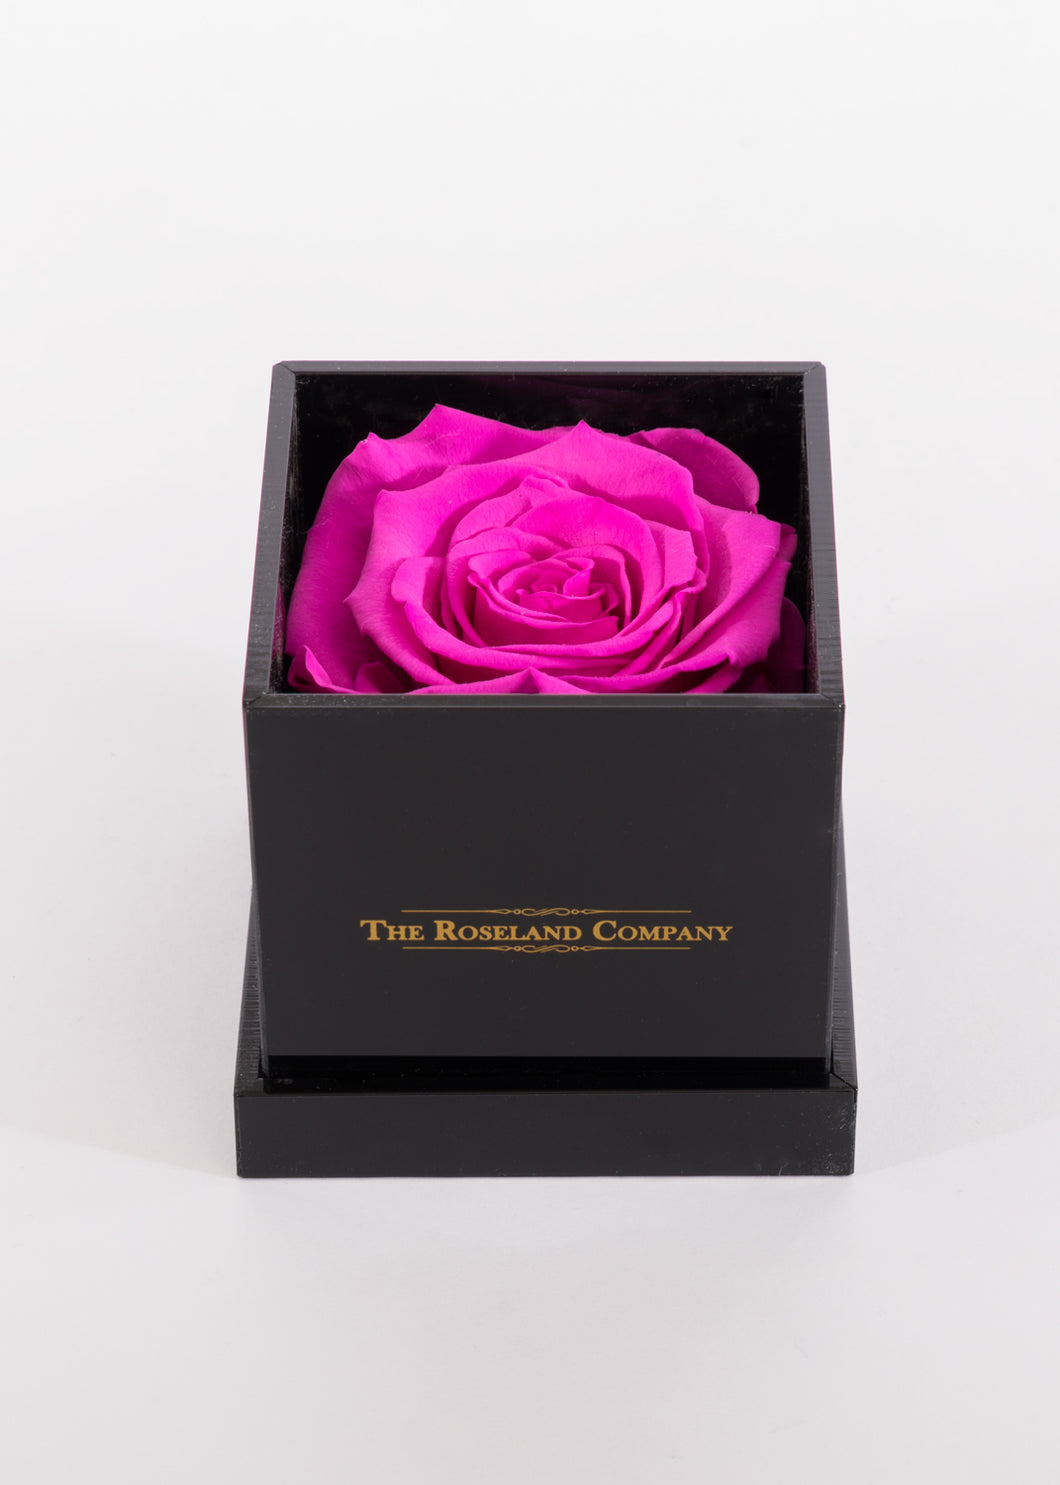 BLACK Small Cube Box with DARK PINK Eternity Rose